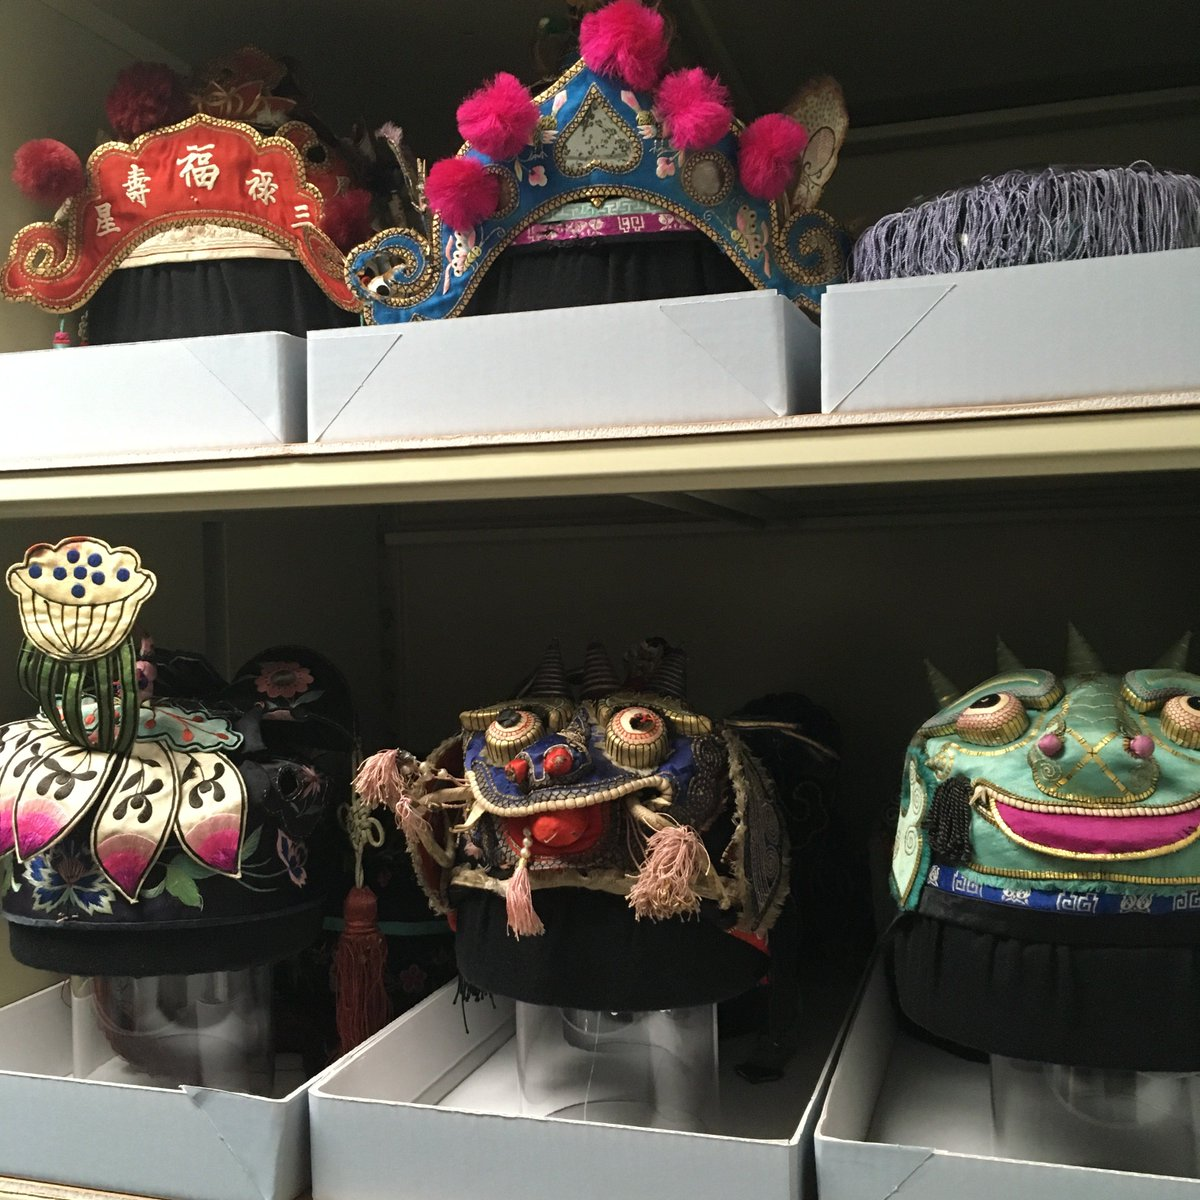 With so much to discover inside our collection storage, our favourite has to be the Chinese Hat collection. Such beautiful, intricate pieces - we all scramble upstairs when we hear theyre being worked on #SecretsMW #MuseumWeek